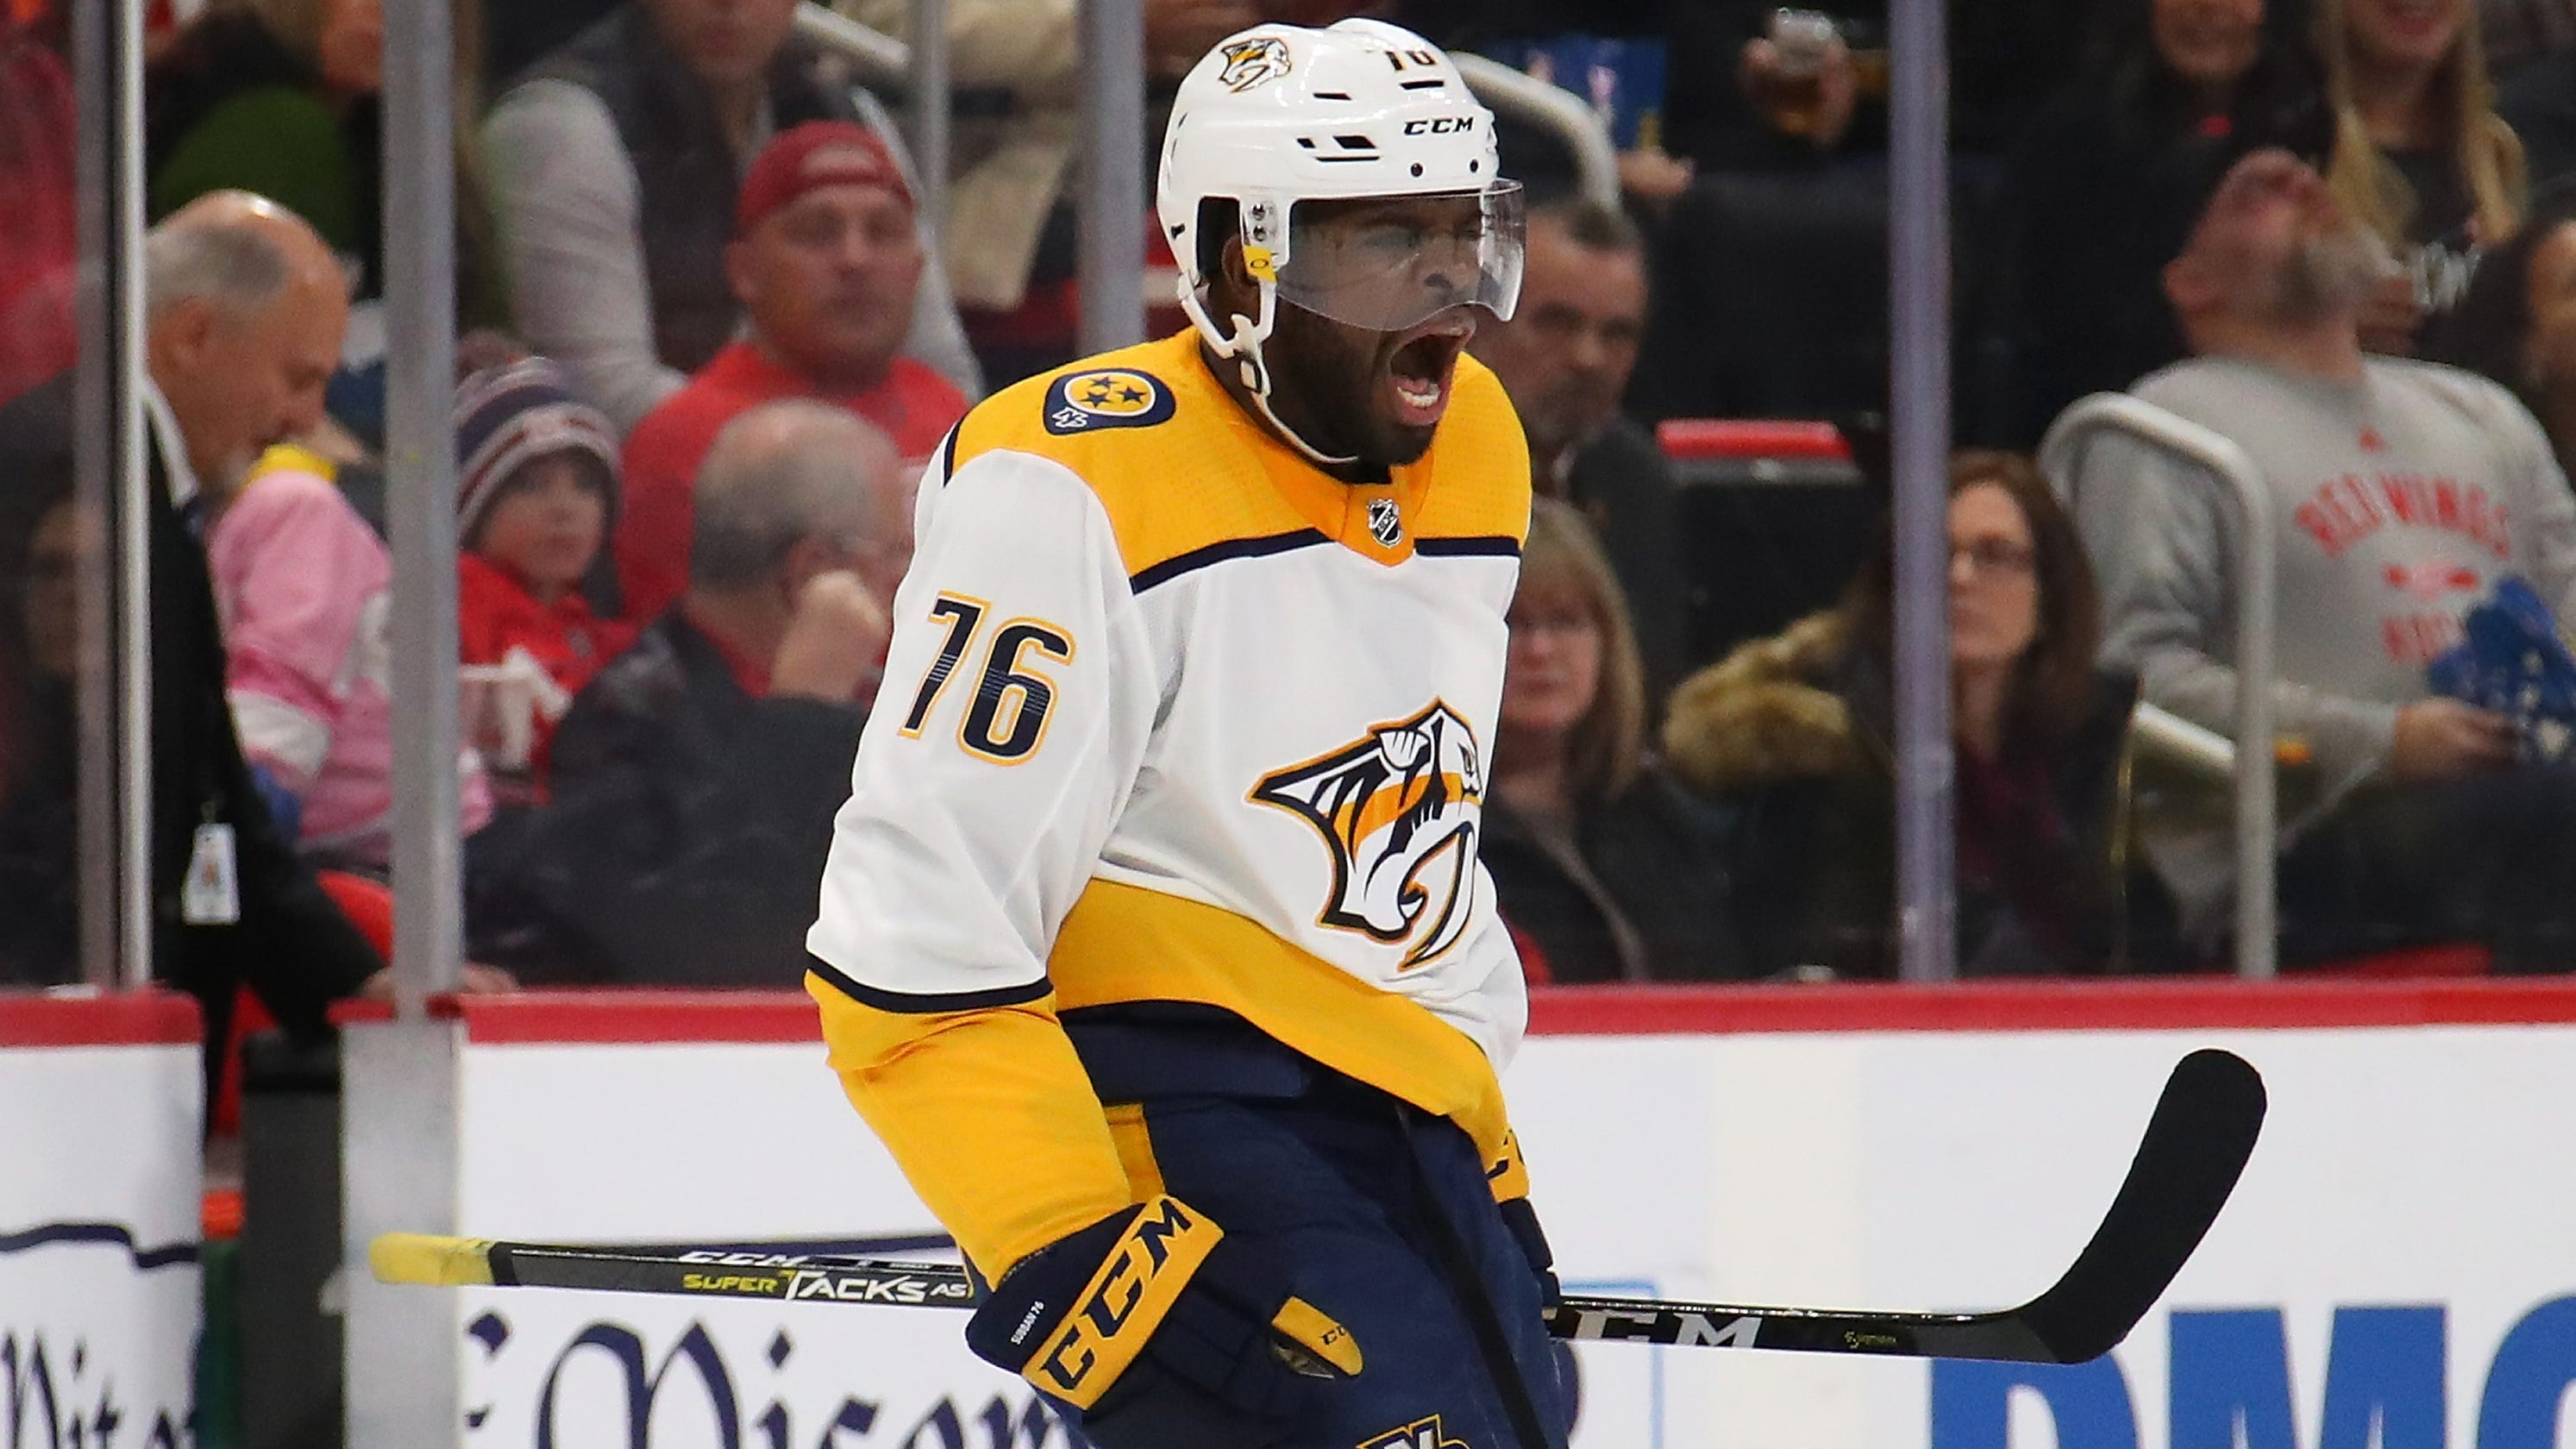 finest selection dd944 38403 Predator star Subban inspires youth player facing racial taunts